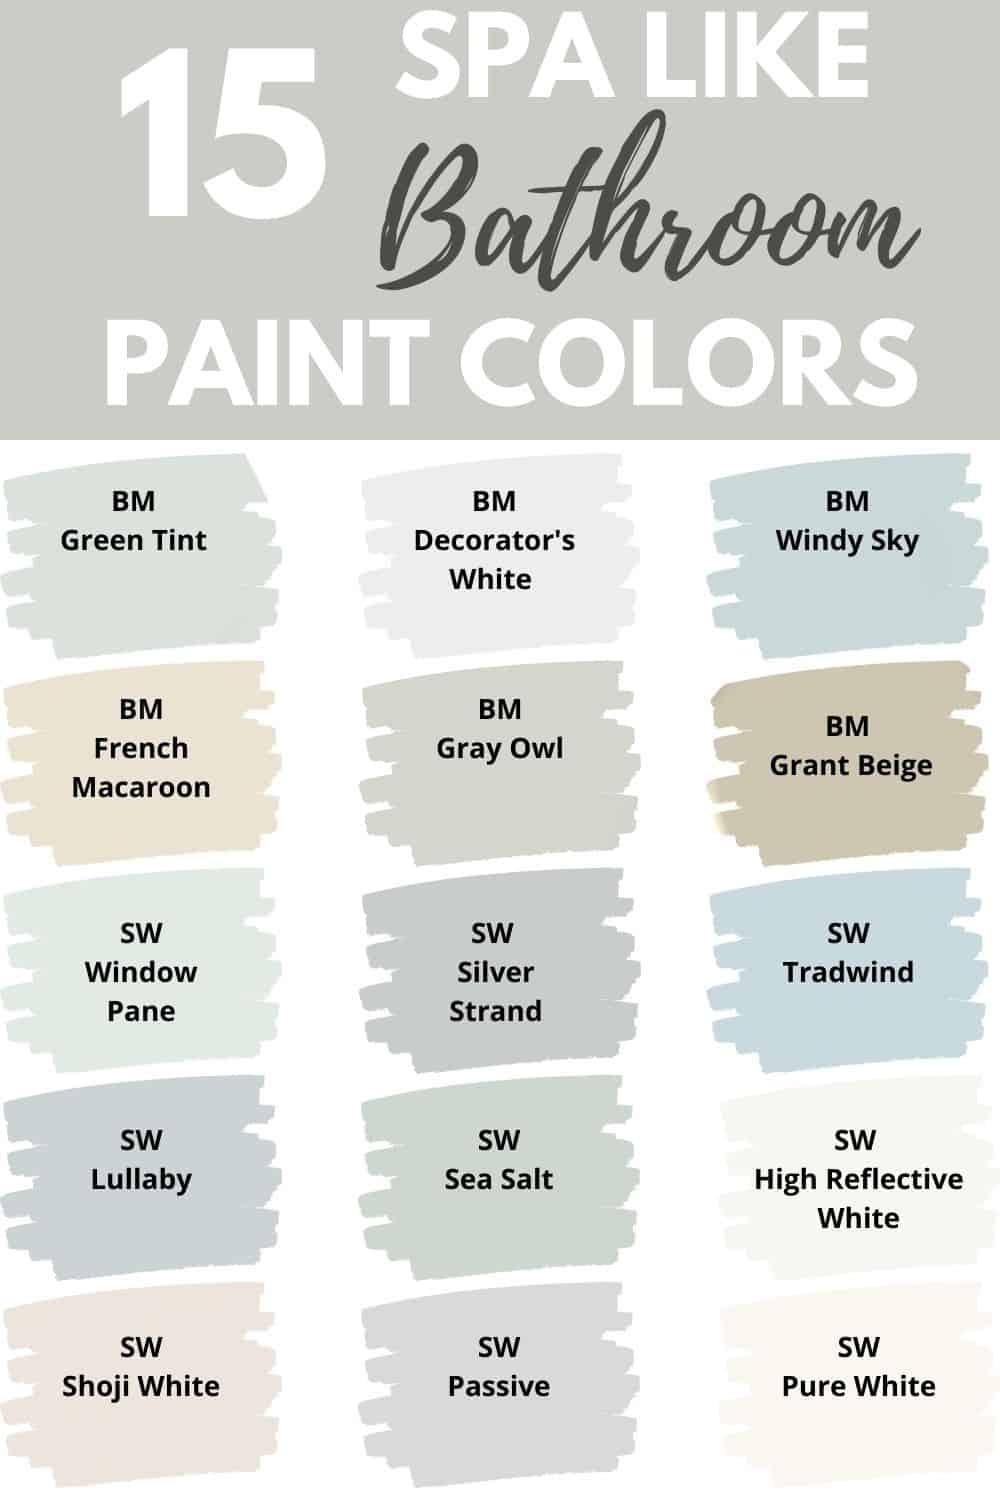 If You Want A Bathroom Paint Color That Is Relaxing And Calming Check Out These 15 Soothing Spa L In 2020 Small Bathroom Colors Small Bathroom Paint Painting Bathroom